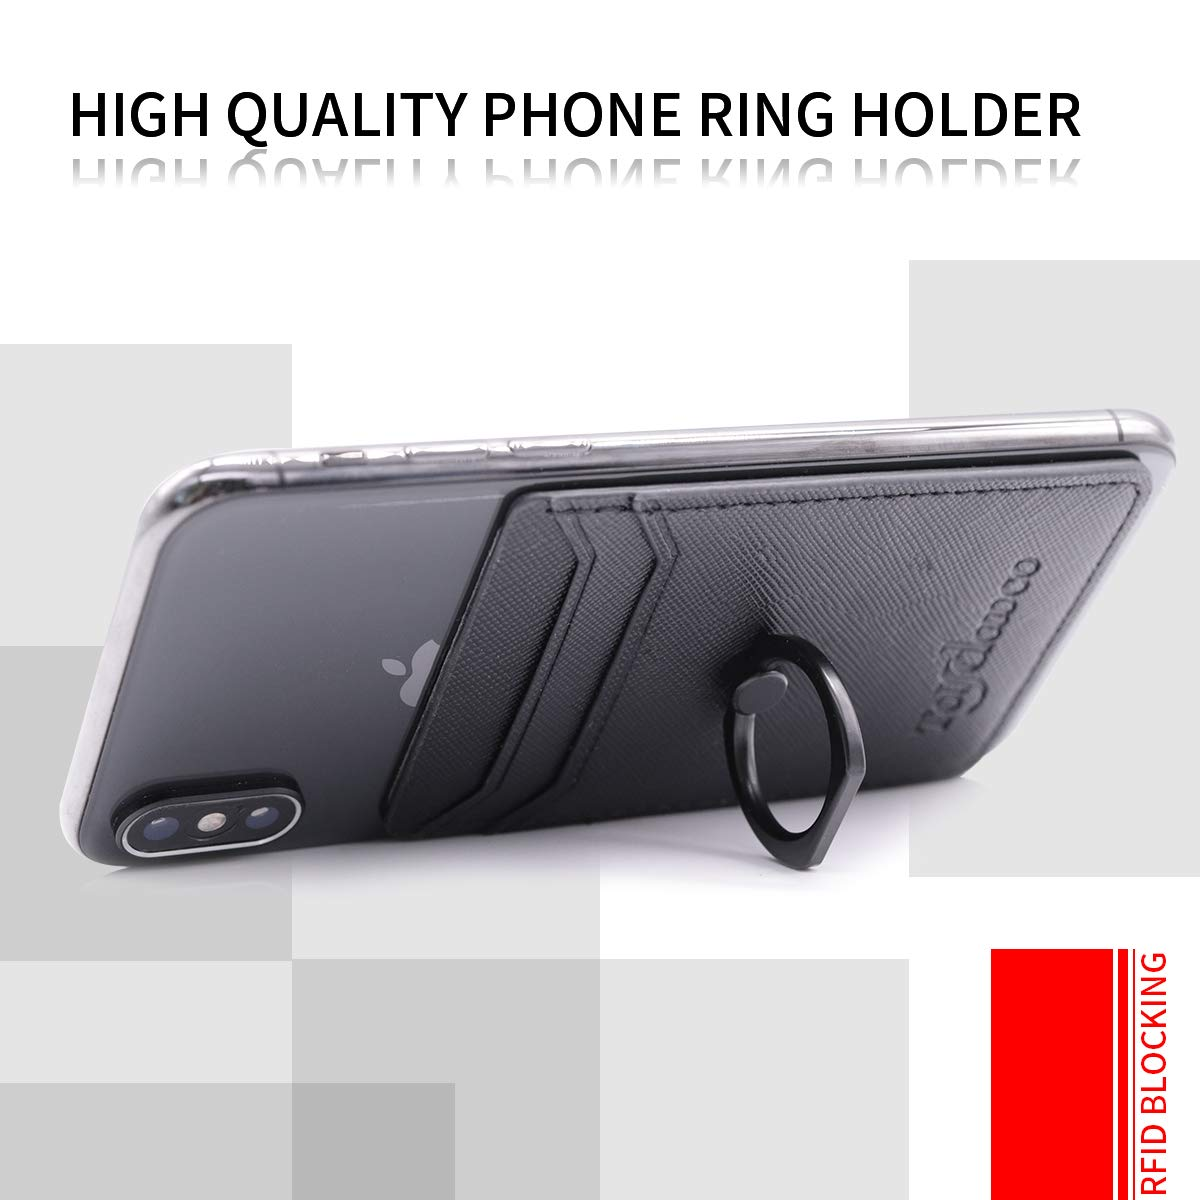 Phone Card Holder with Phone Ring Grip Adhesive Wallet Cell Phone Pocket Credit Card ID Case for Back of Phone,3M Sticker Smartphones- Black Stick-on,Card Sleeve for iPhone,Samsung